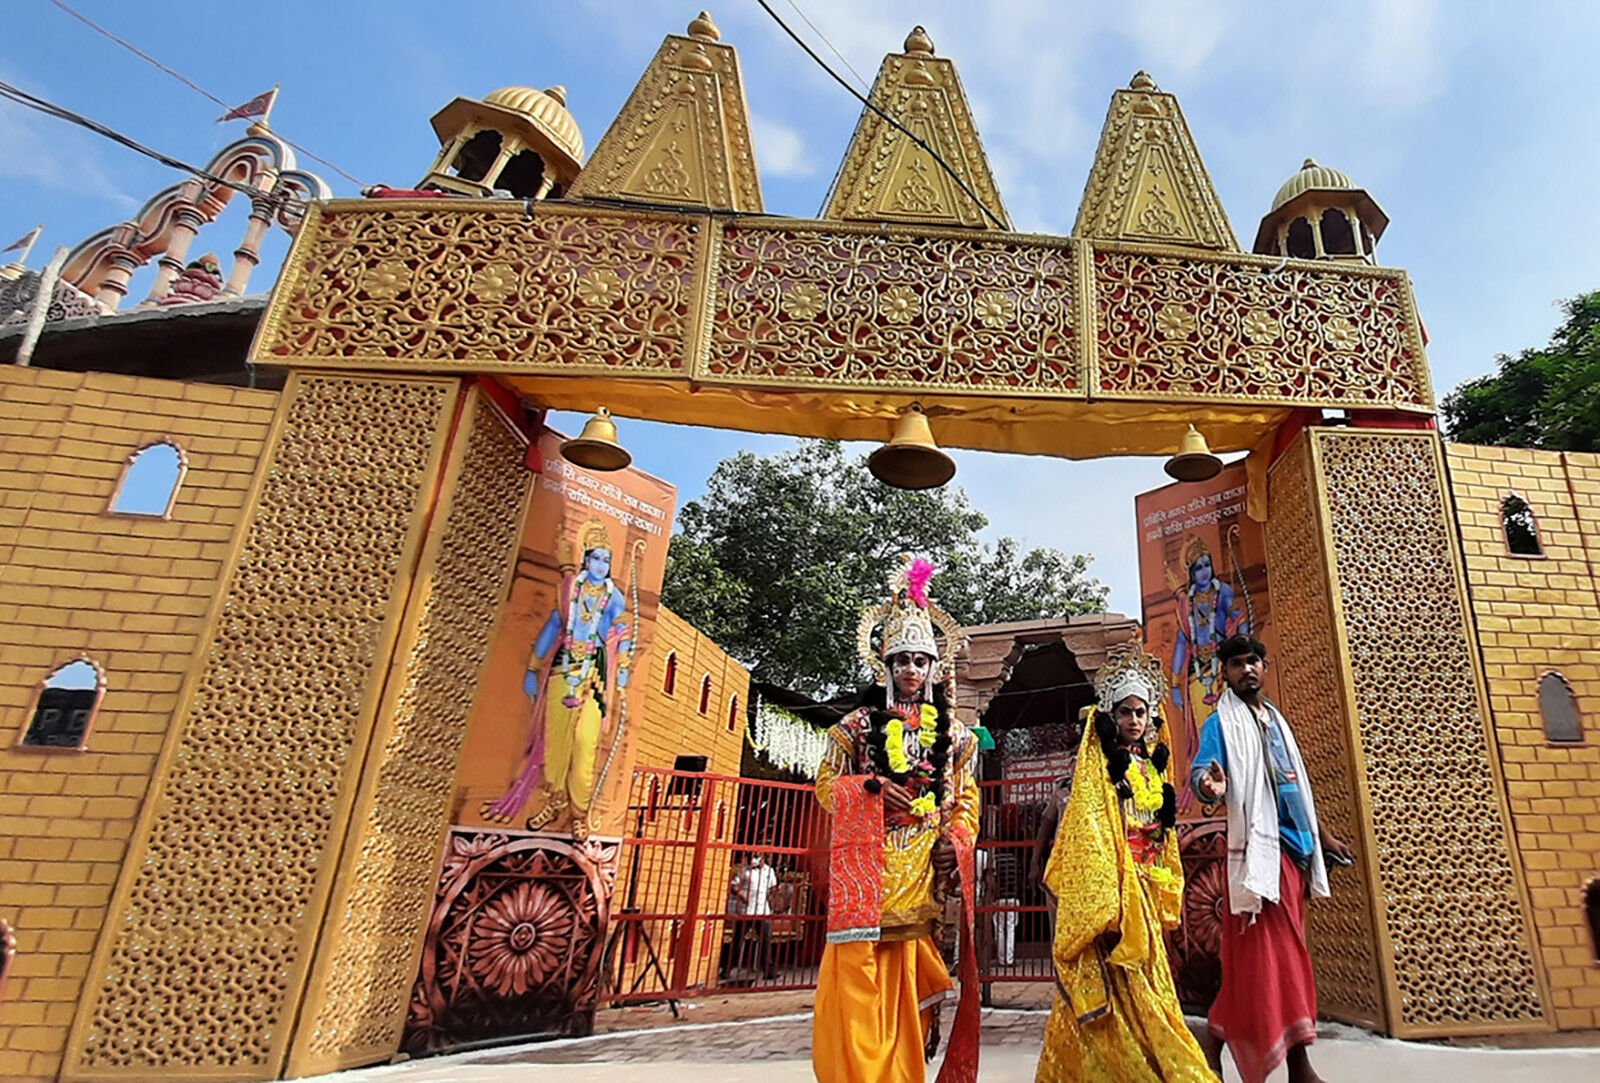 India begins building the Hindu temple in Ayodhya after centuries of controversy